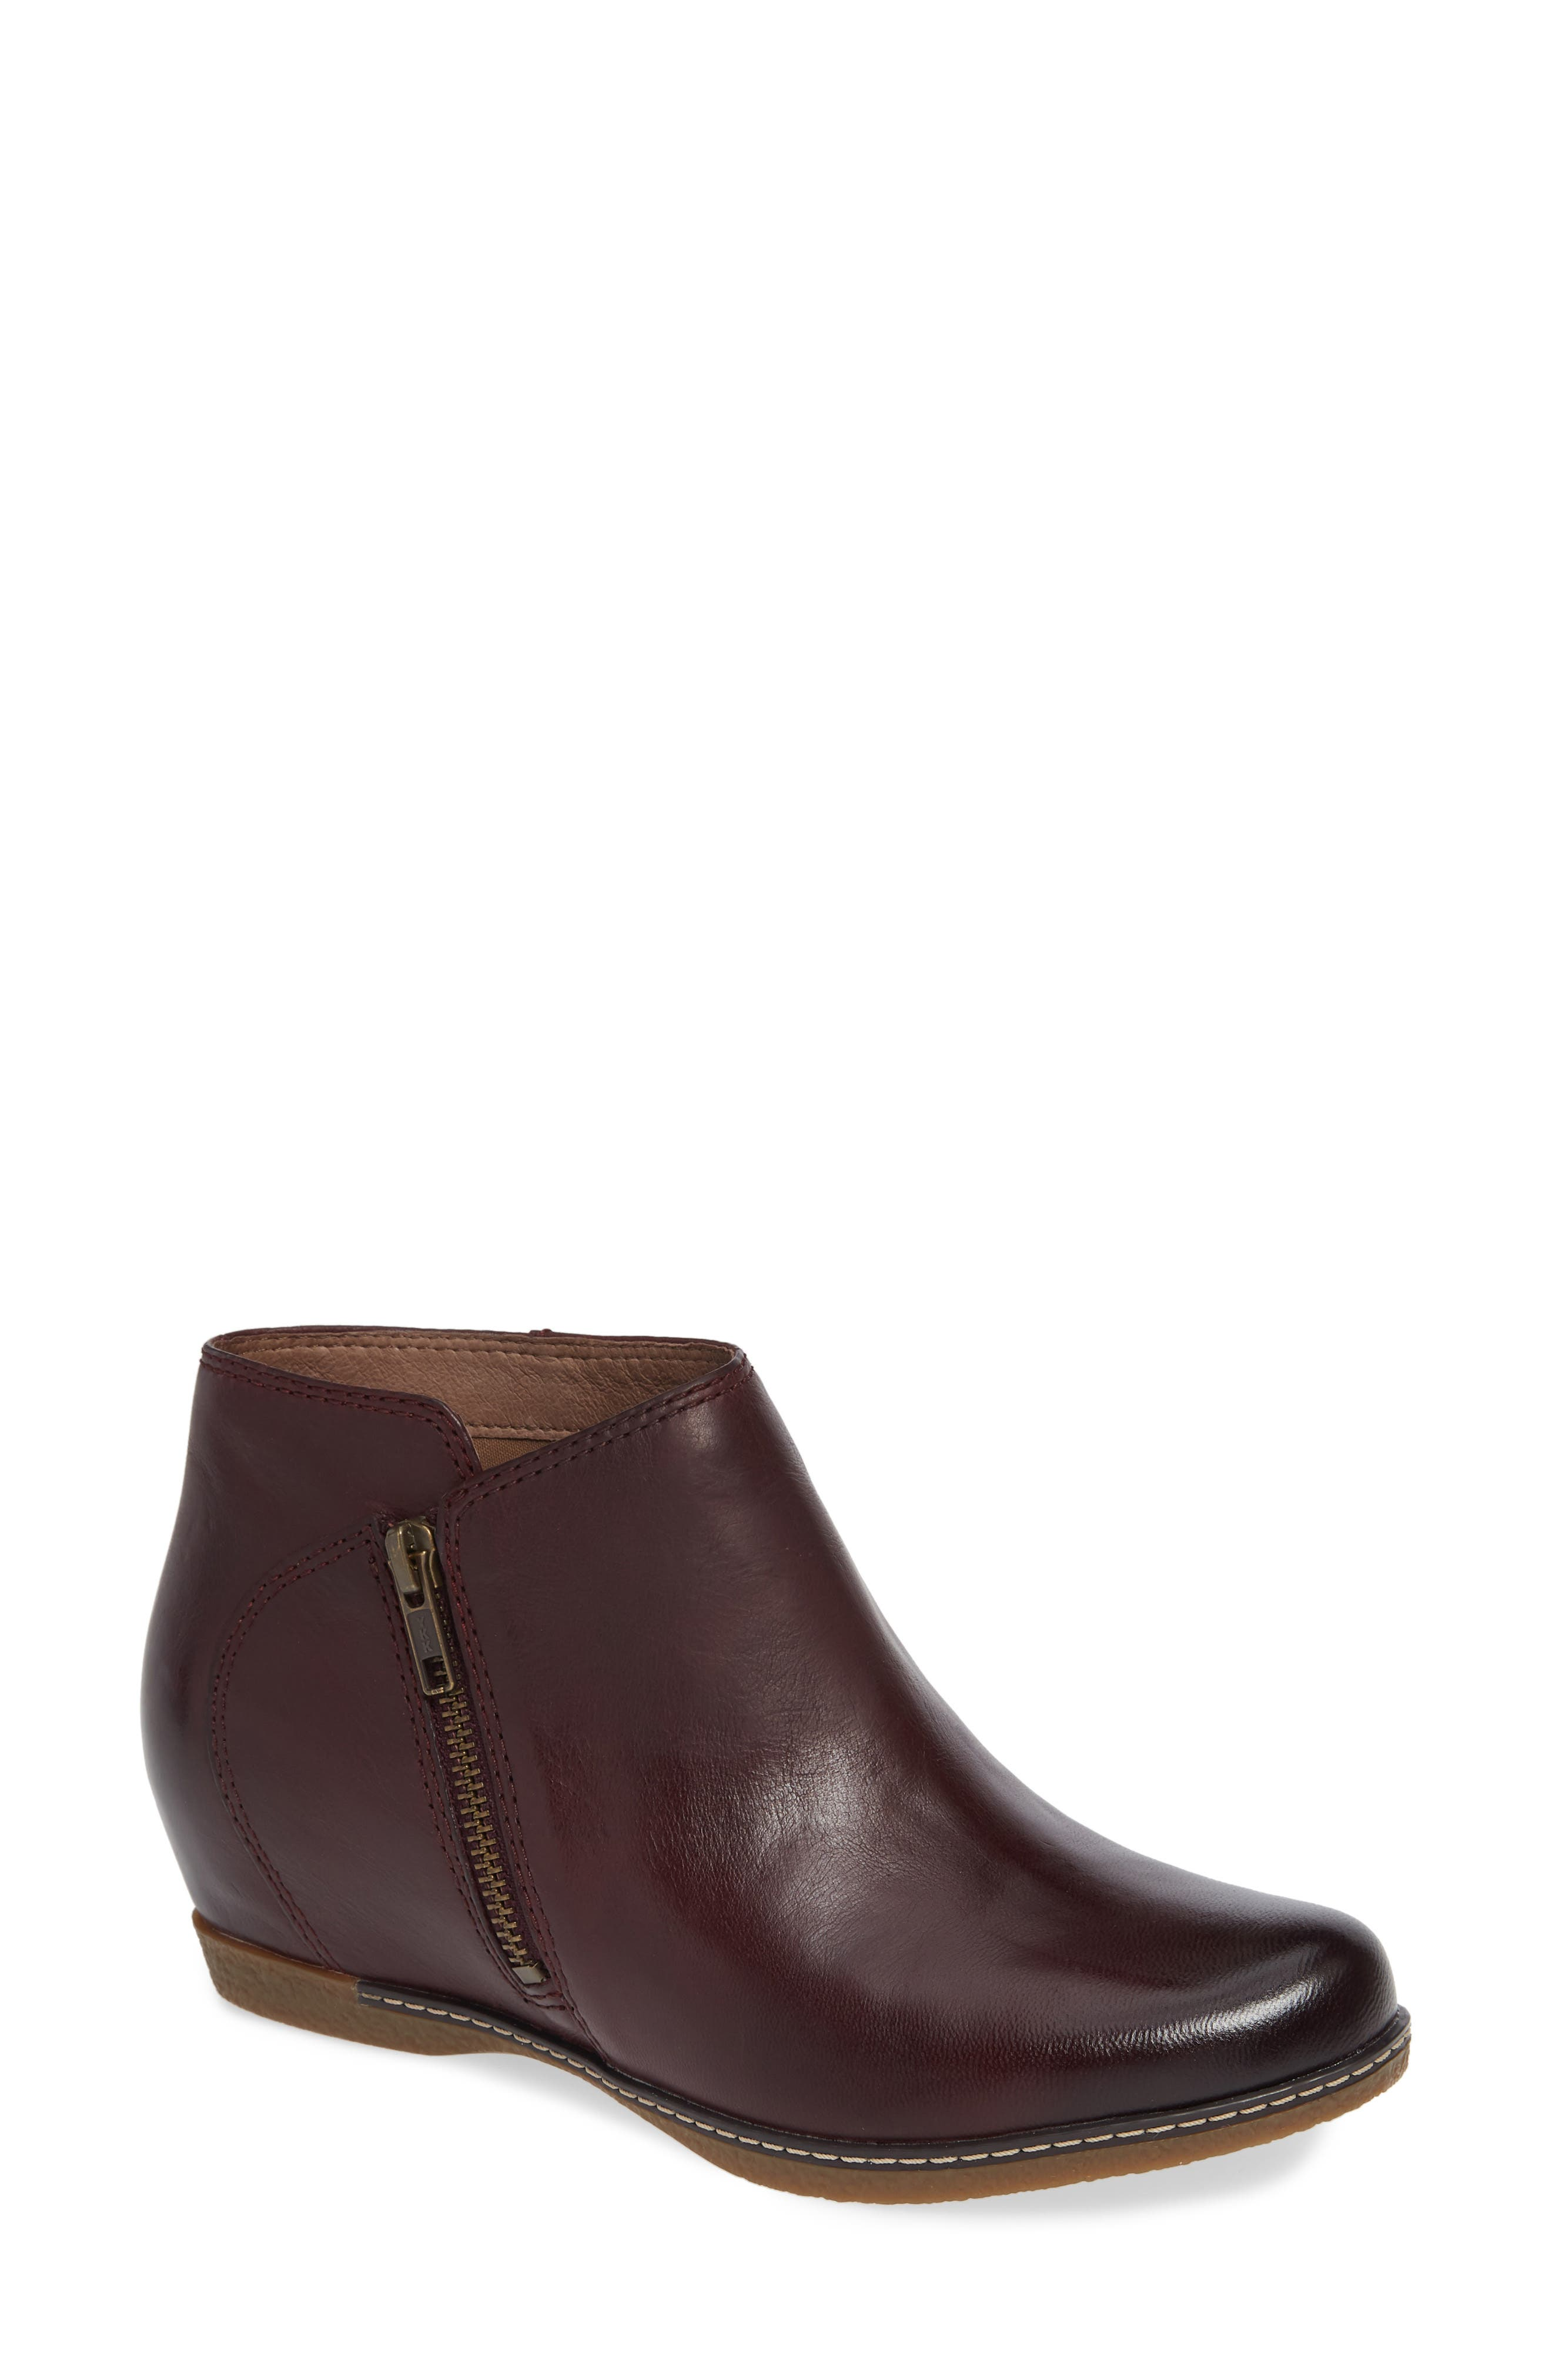 Leyla Bootie,                             Main thumbnail 1, color,                             WINE BURNISHED LEATHER